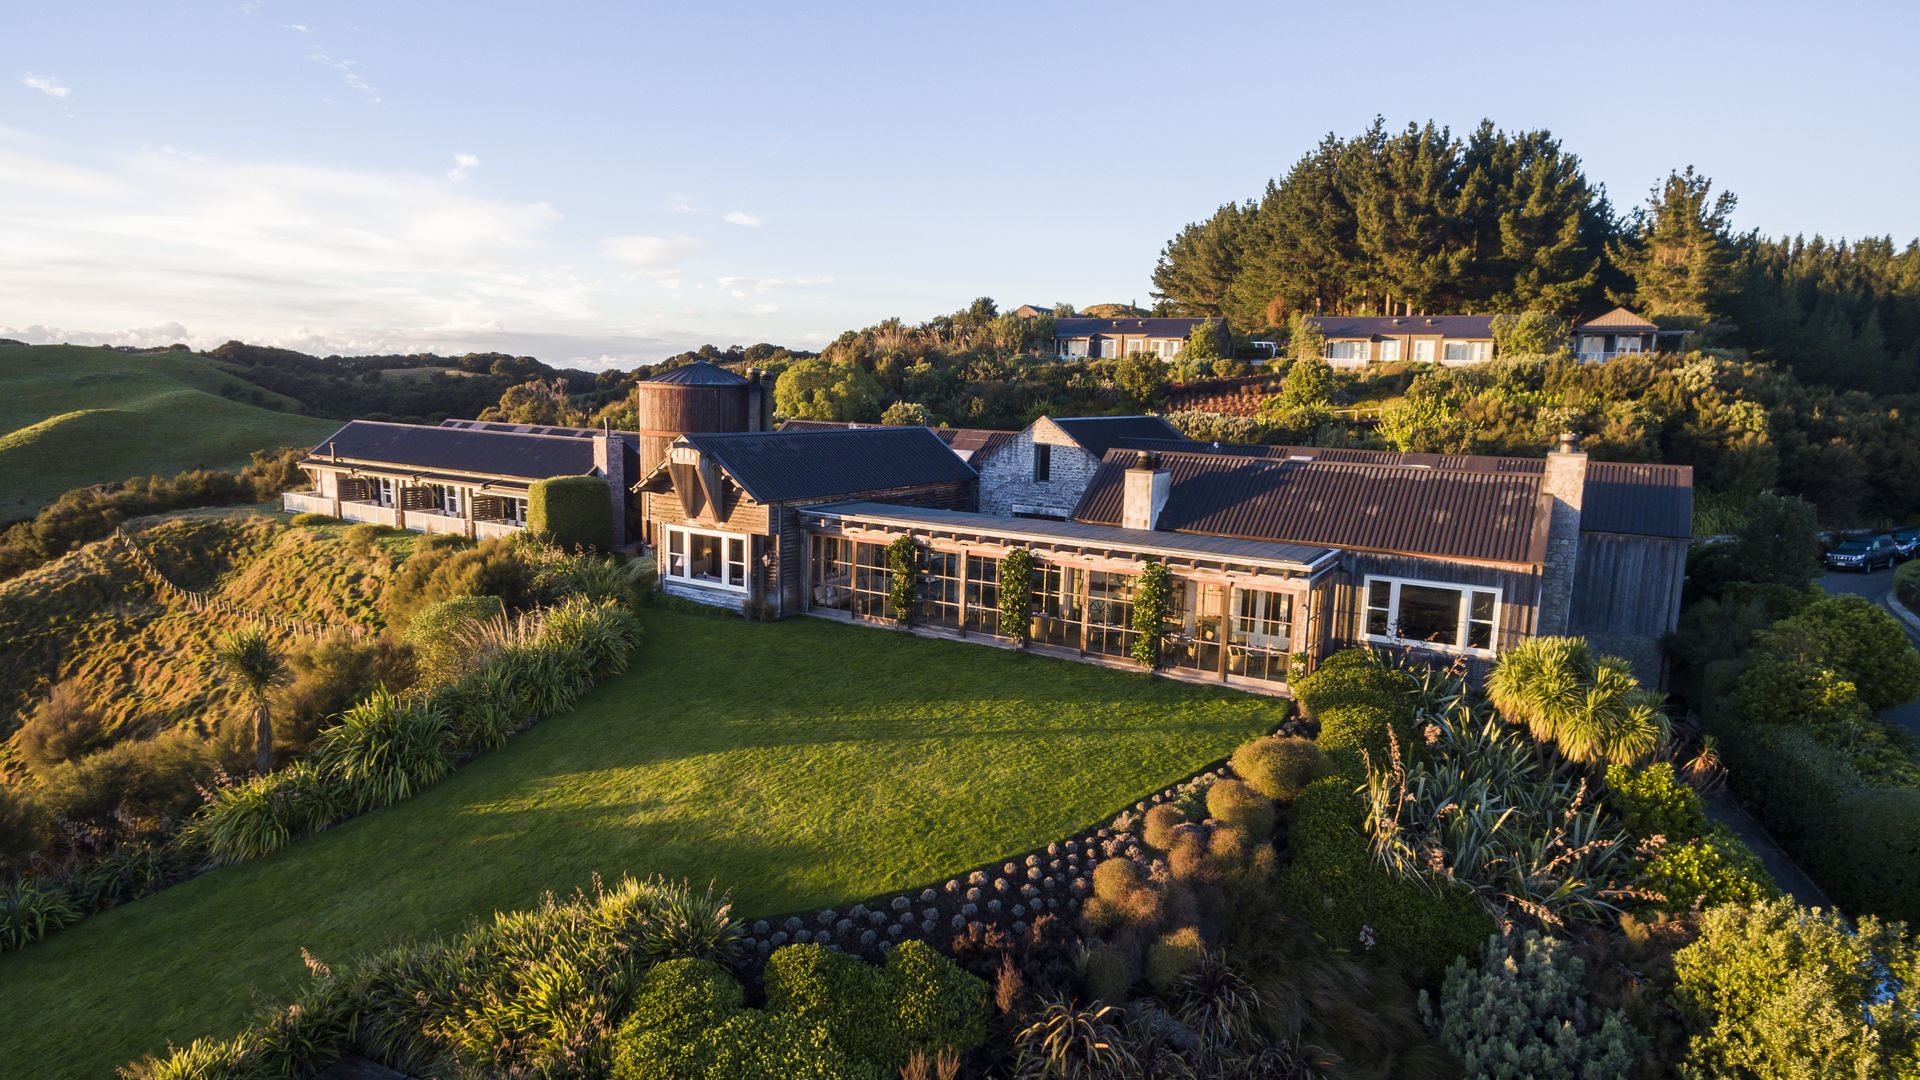 Cape Kidnappers Lodge - pic courtesy Robertson Lodges